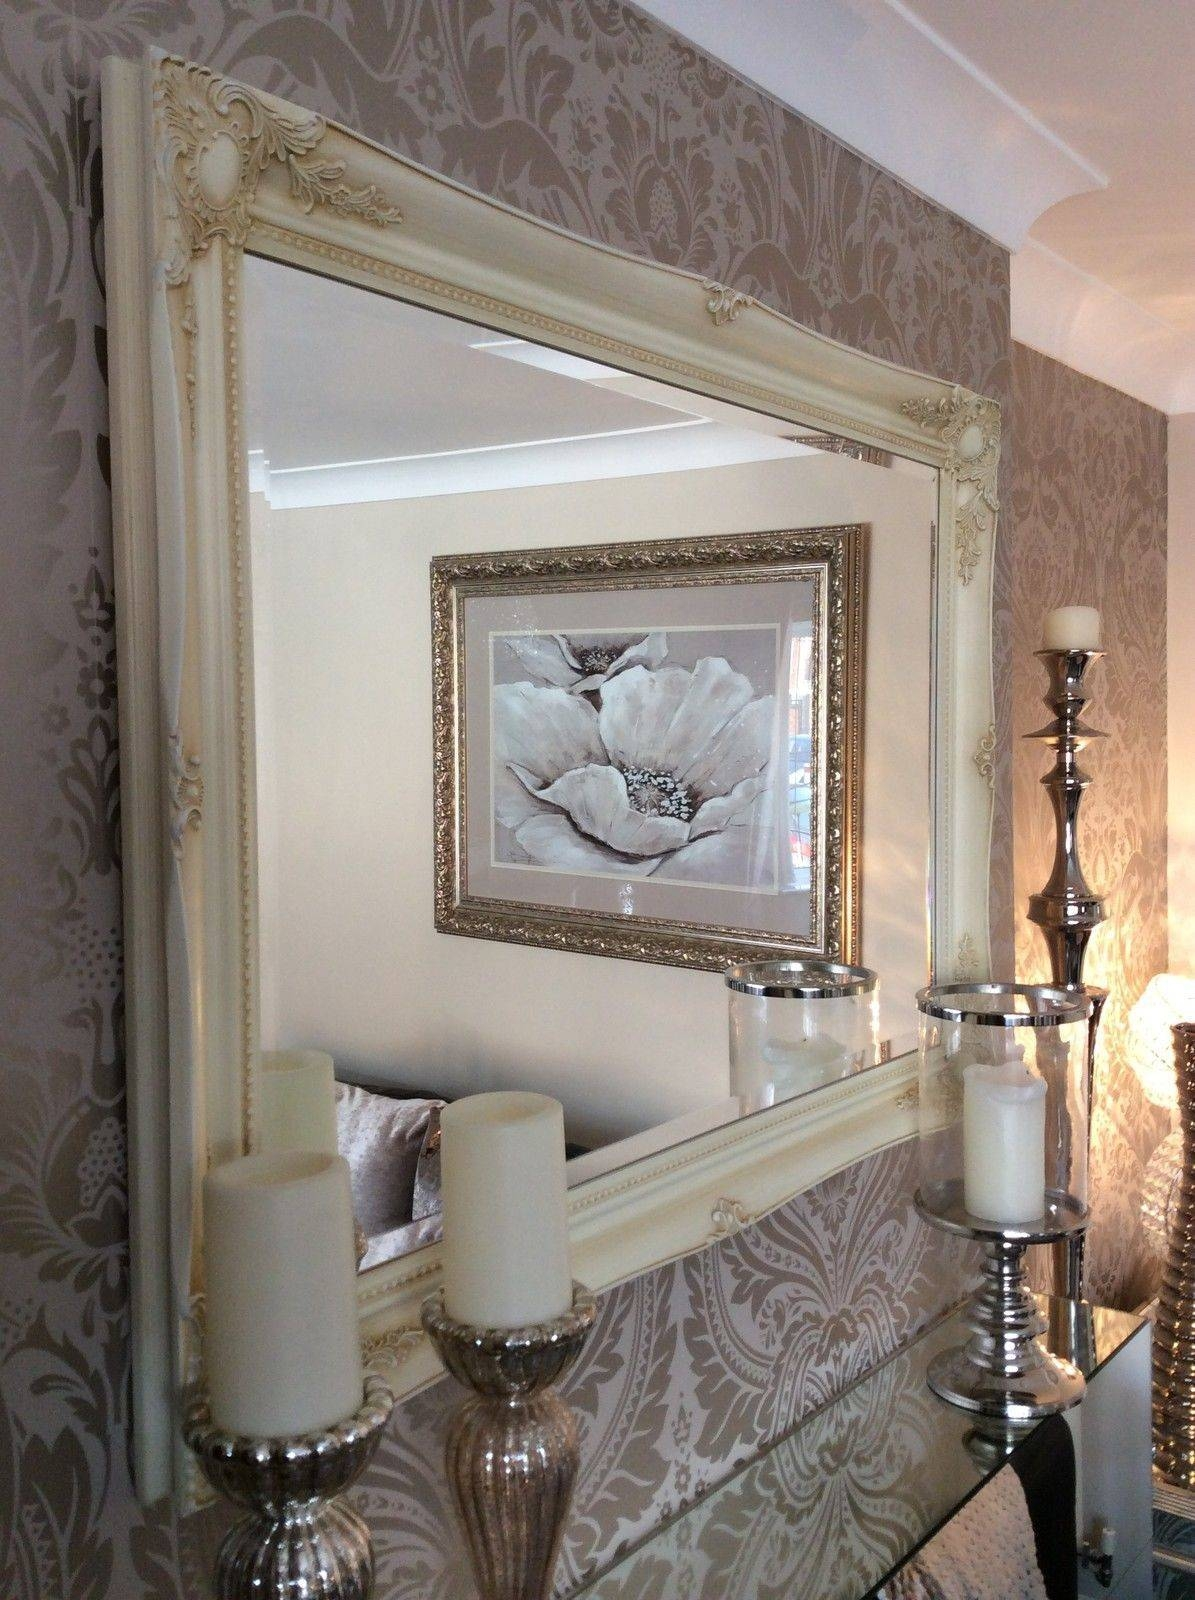 Cream Shabby Chic Mirror – Insured In Transit – Bevelled Or Plain With Regard To Cream Shabby Chic Mirrors (View 4 of 15)